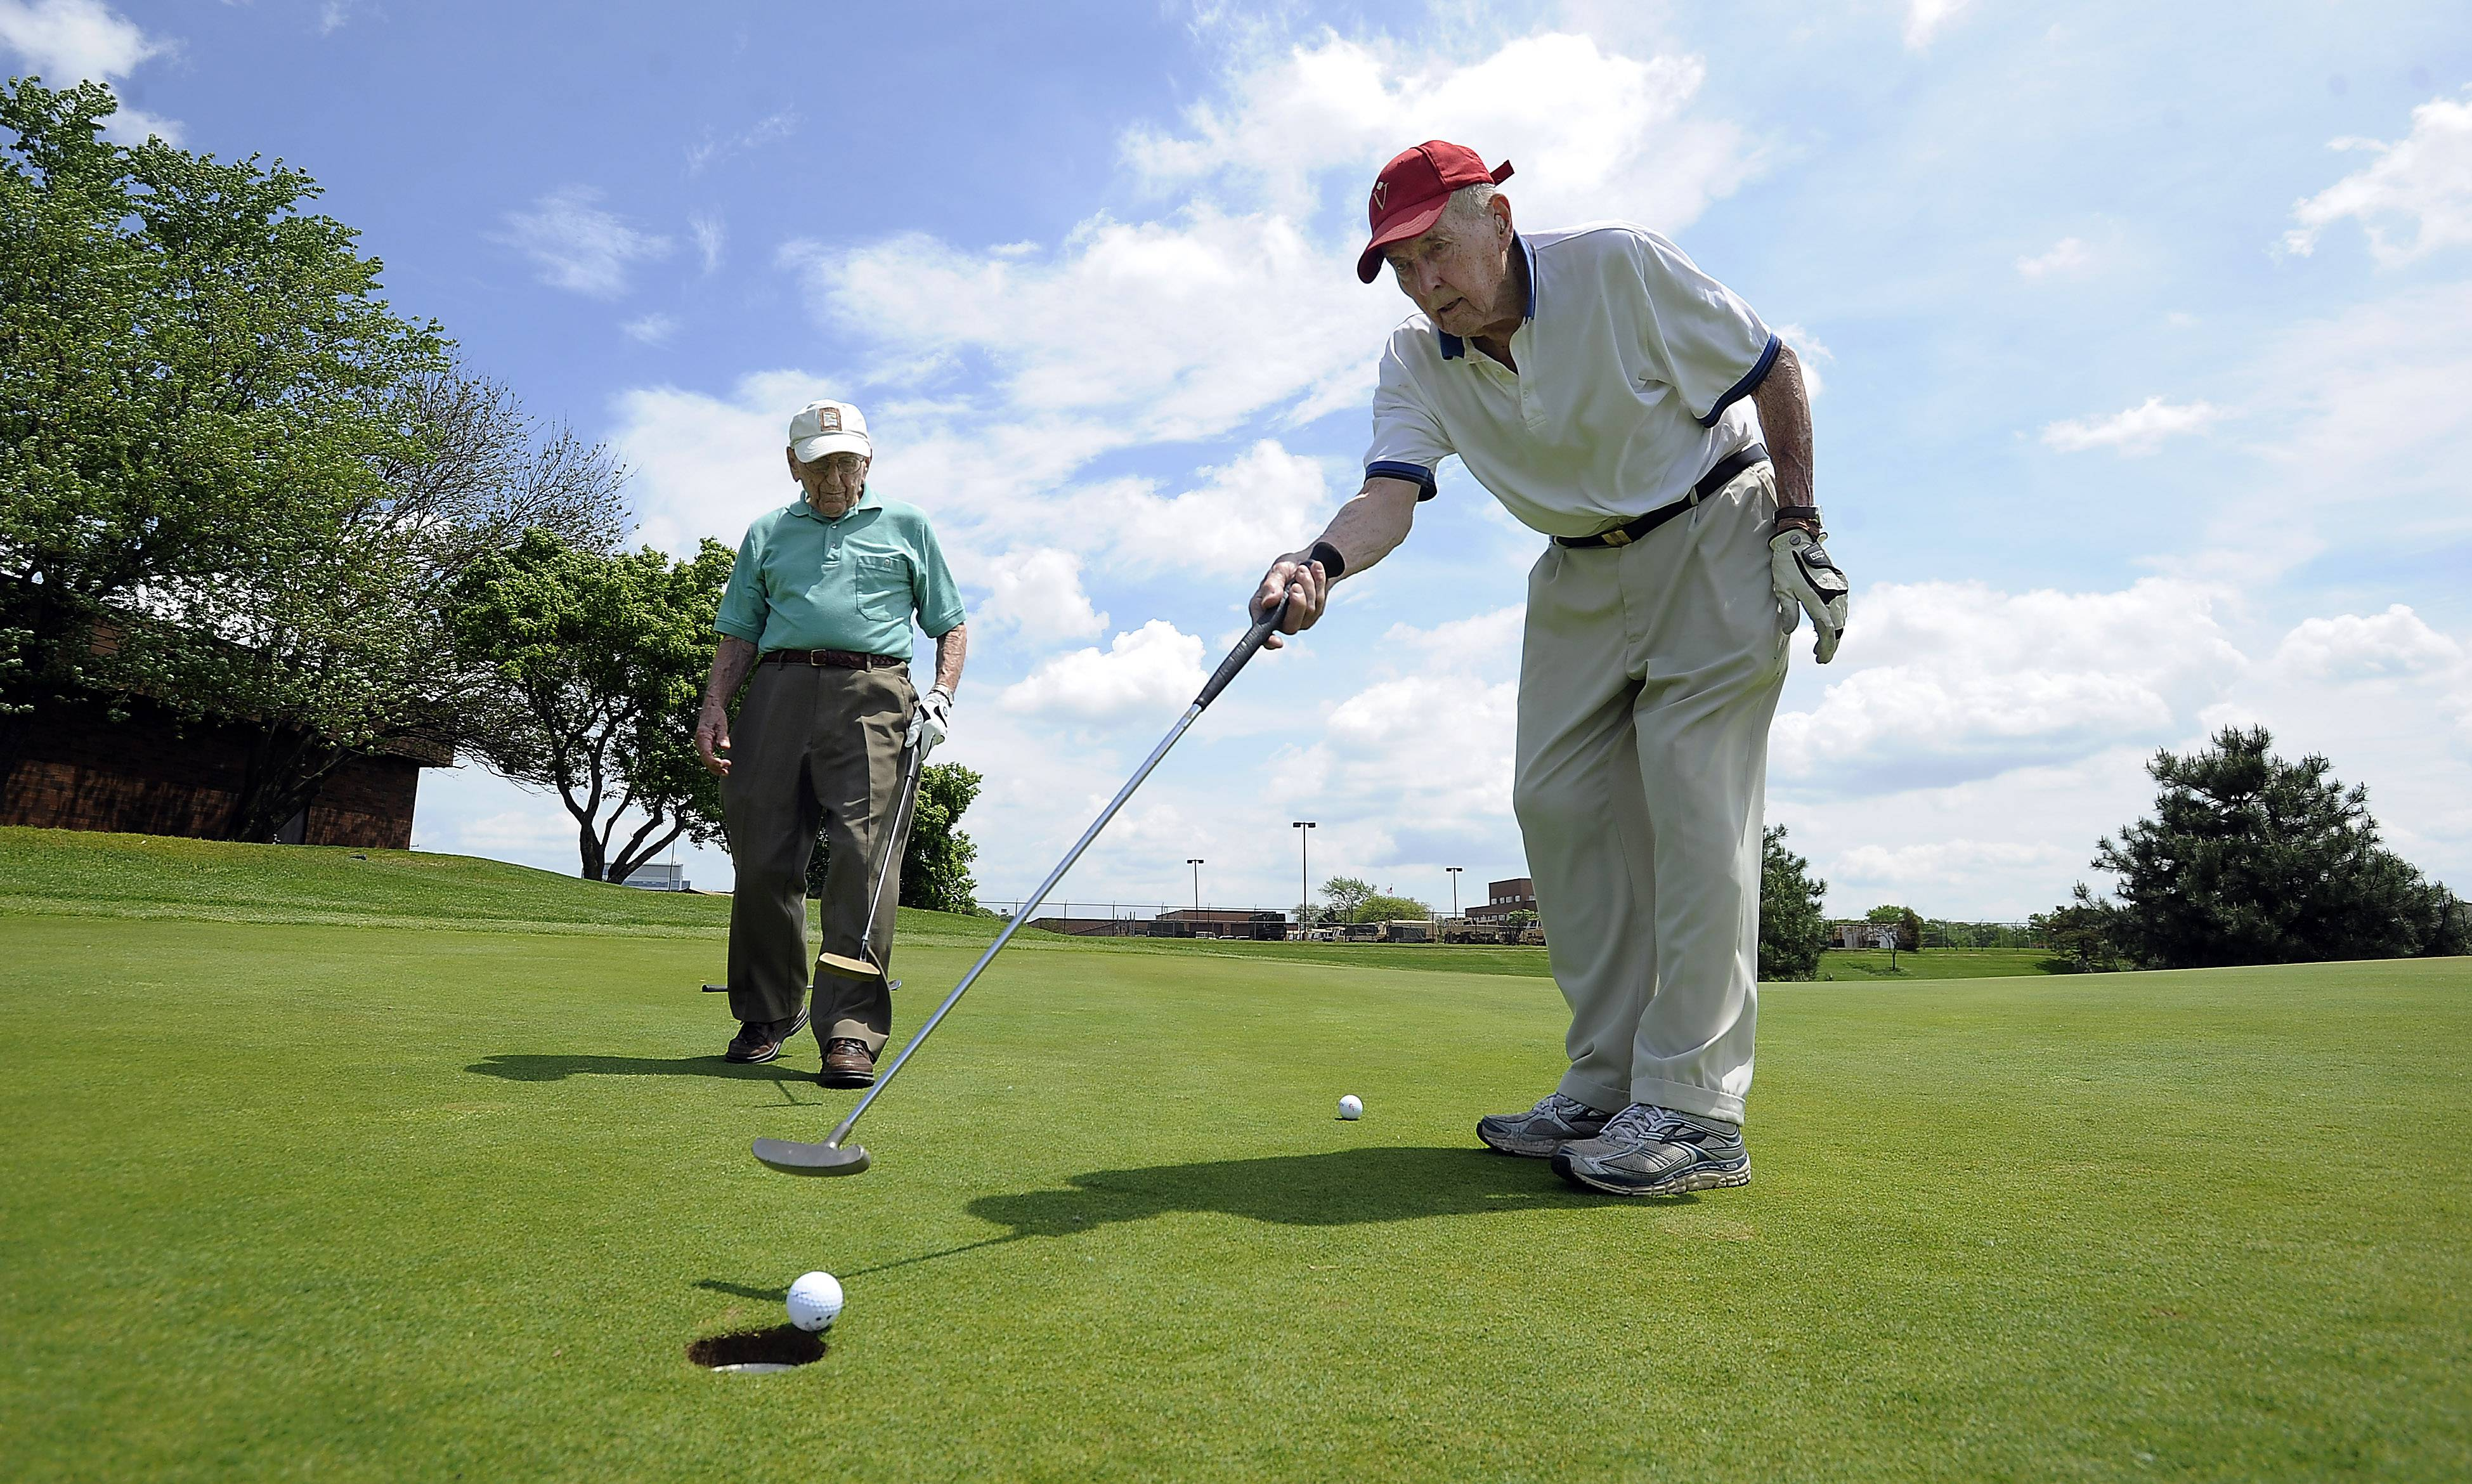 Tapping in a putt, 98-year-old Dick Breeden golfs with Dick Muhlethaler, who is 103. With a combined age of 201, the Luther Village residents are capable of scoring half their ages over nine holes in their games every Tuesday at Arlington Lakes Golf Club in Arlington Heights.